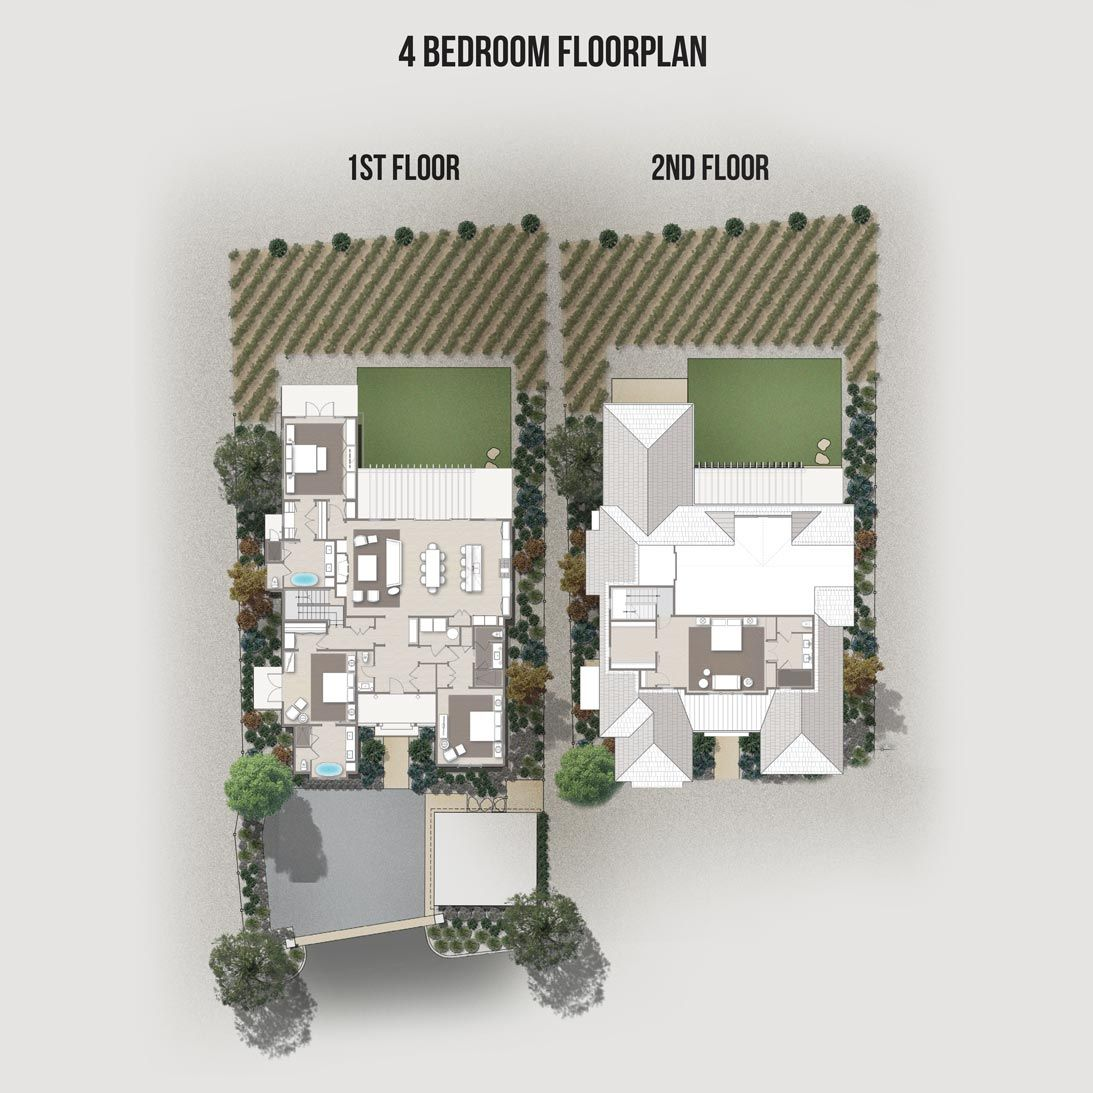 Four Seasons Napa Valley 4 Bedroom Residence | Villa plan ... on napa valley pool, napa valley style, napa valley photography, napa valley house plan, napa valley dining room, napa valley site plan, napa valley aerial view, napa valley architecture, napa valley living room,